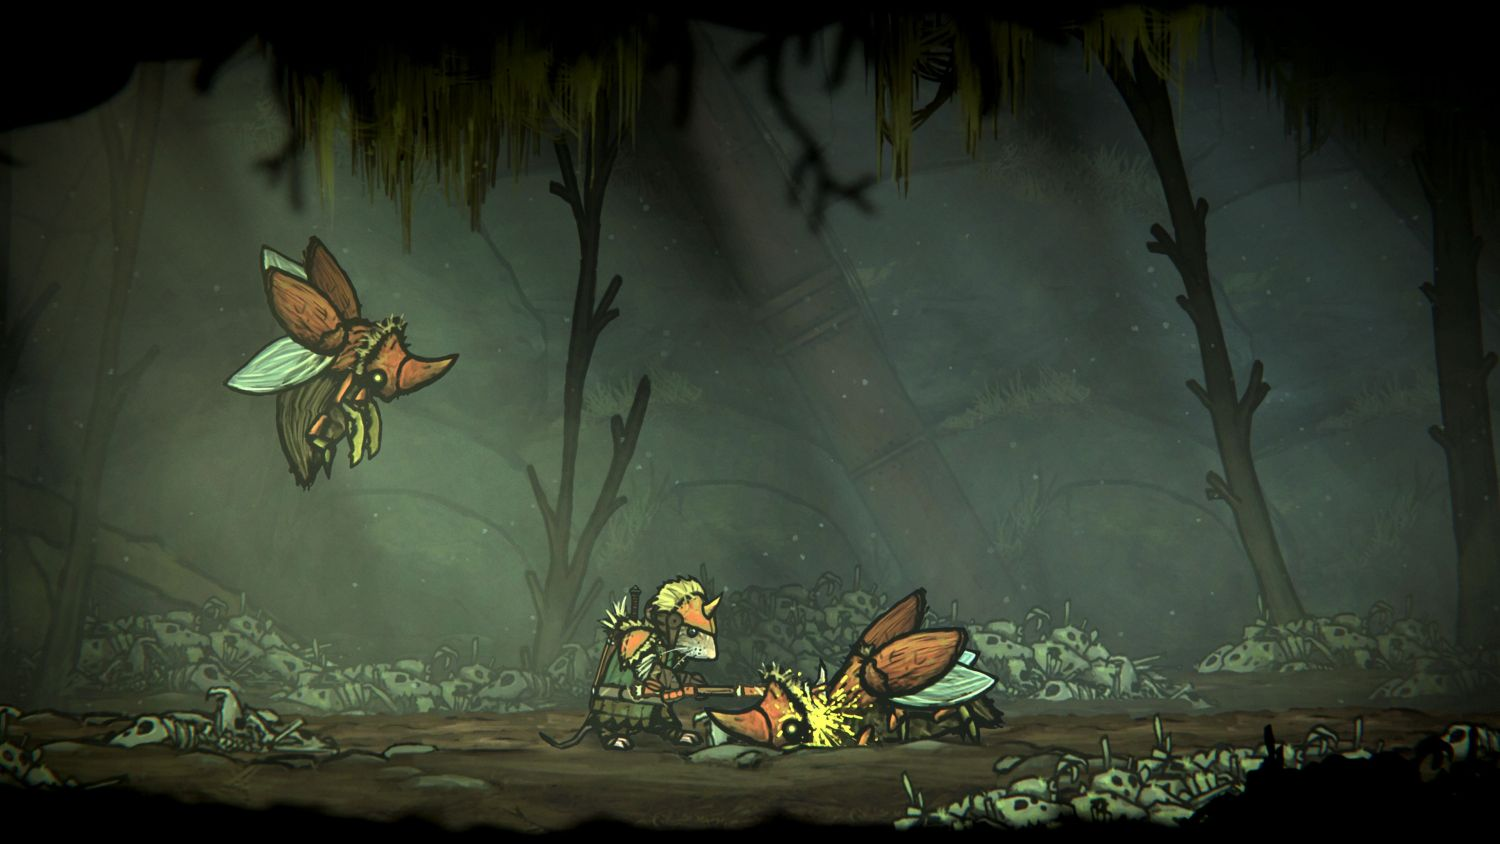 Geek Review: Tails of Iron - Killing grubs